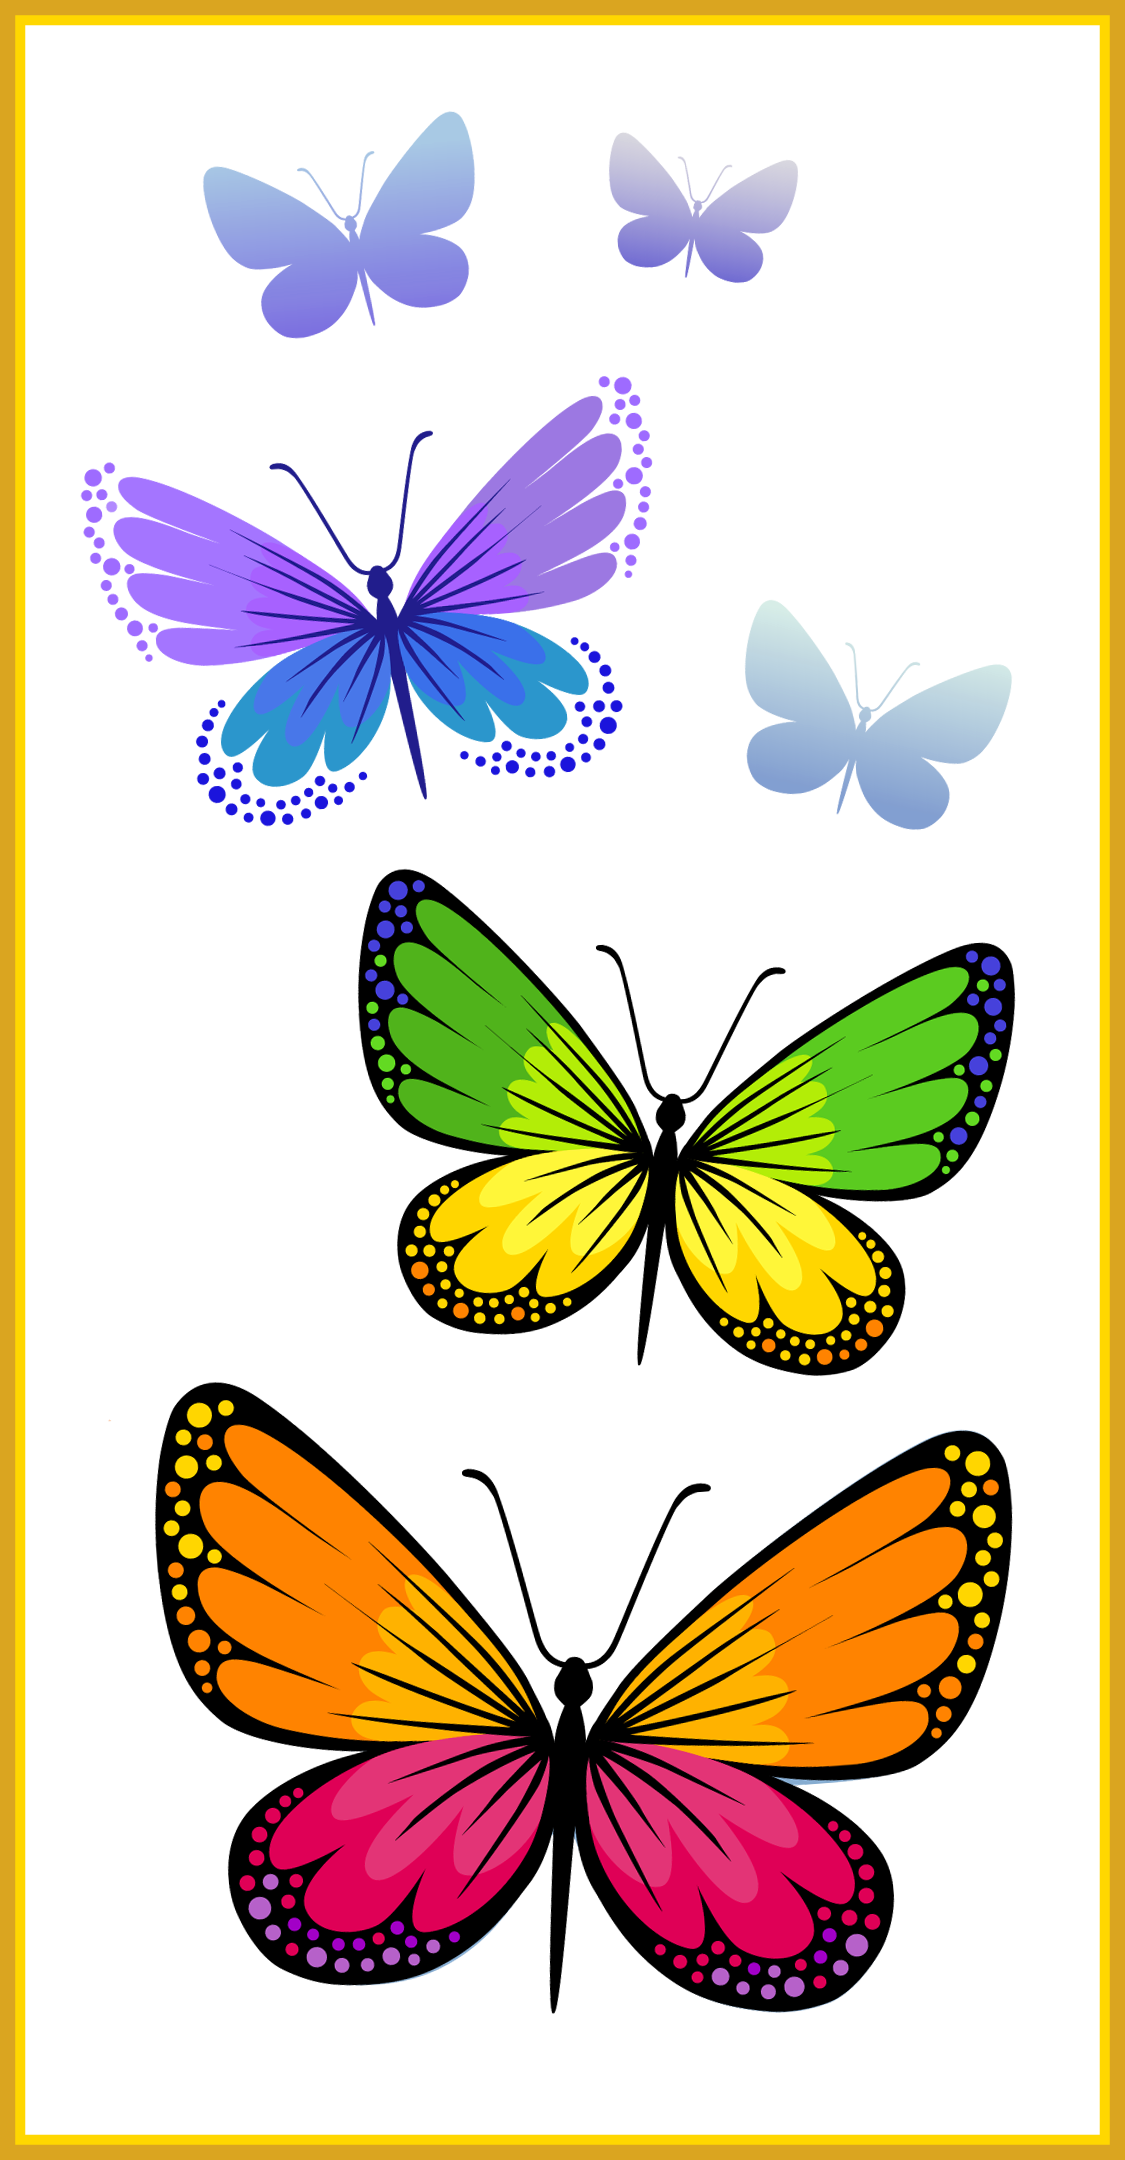 Flying clipart love. Fascinating butterflies composition png